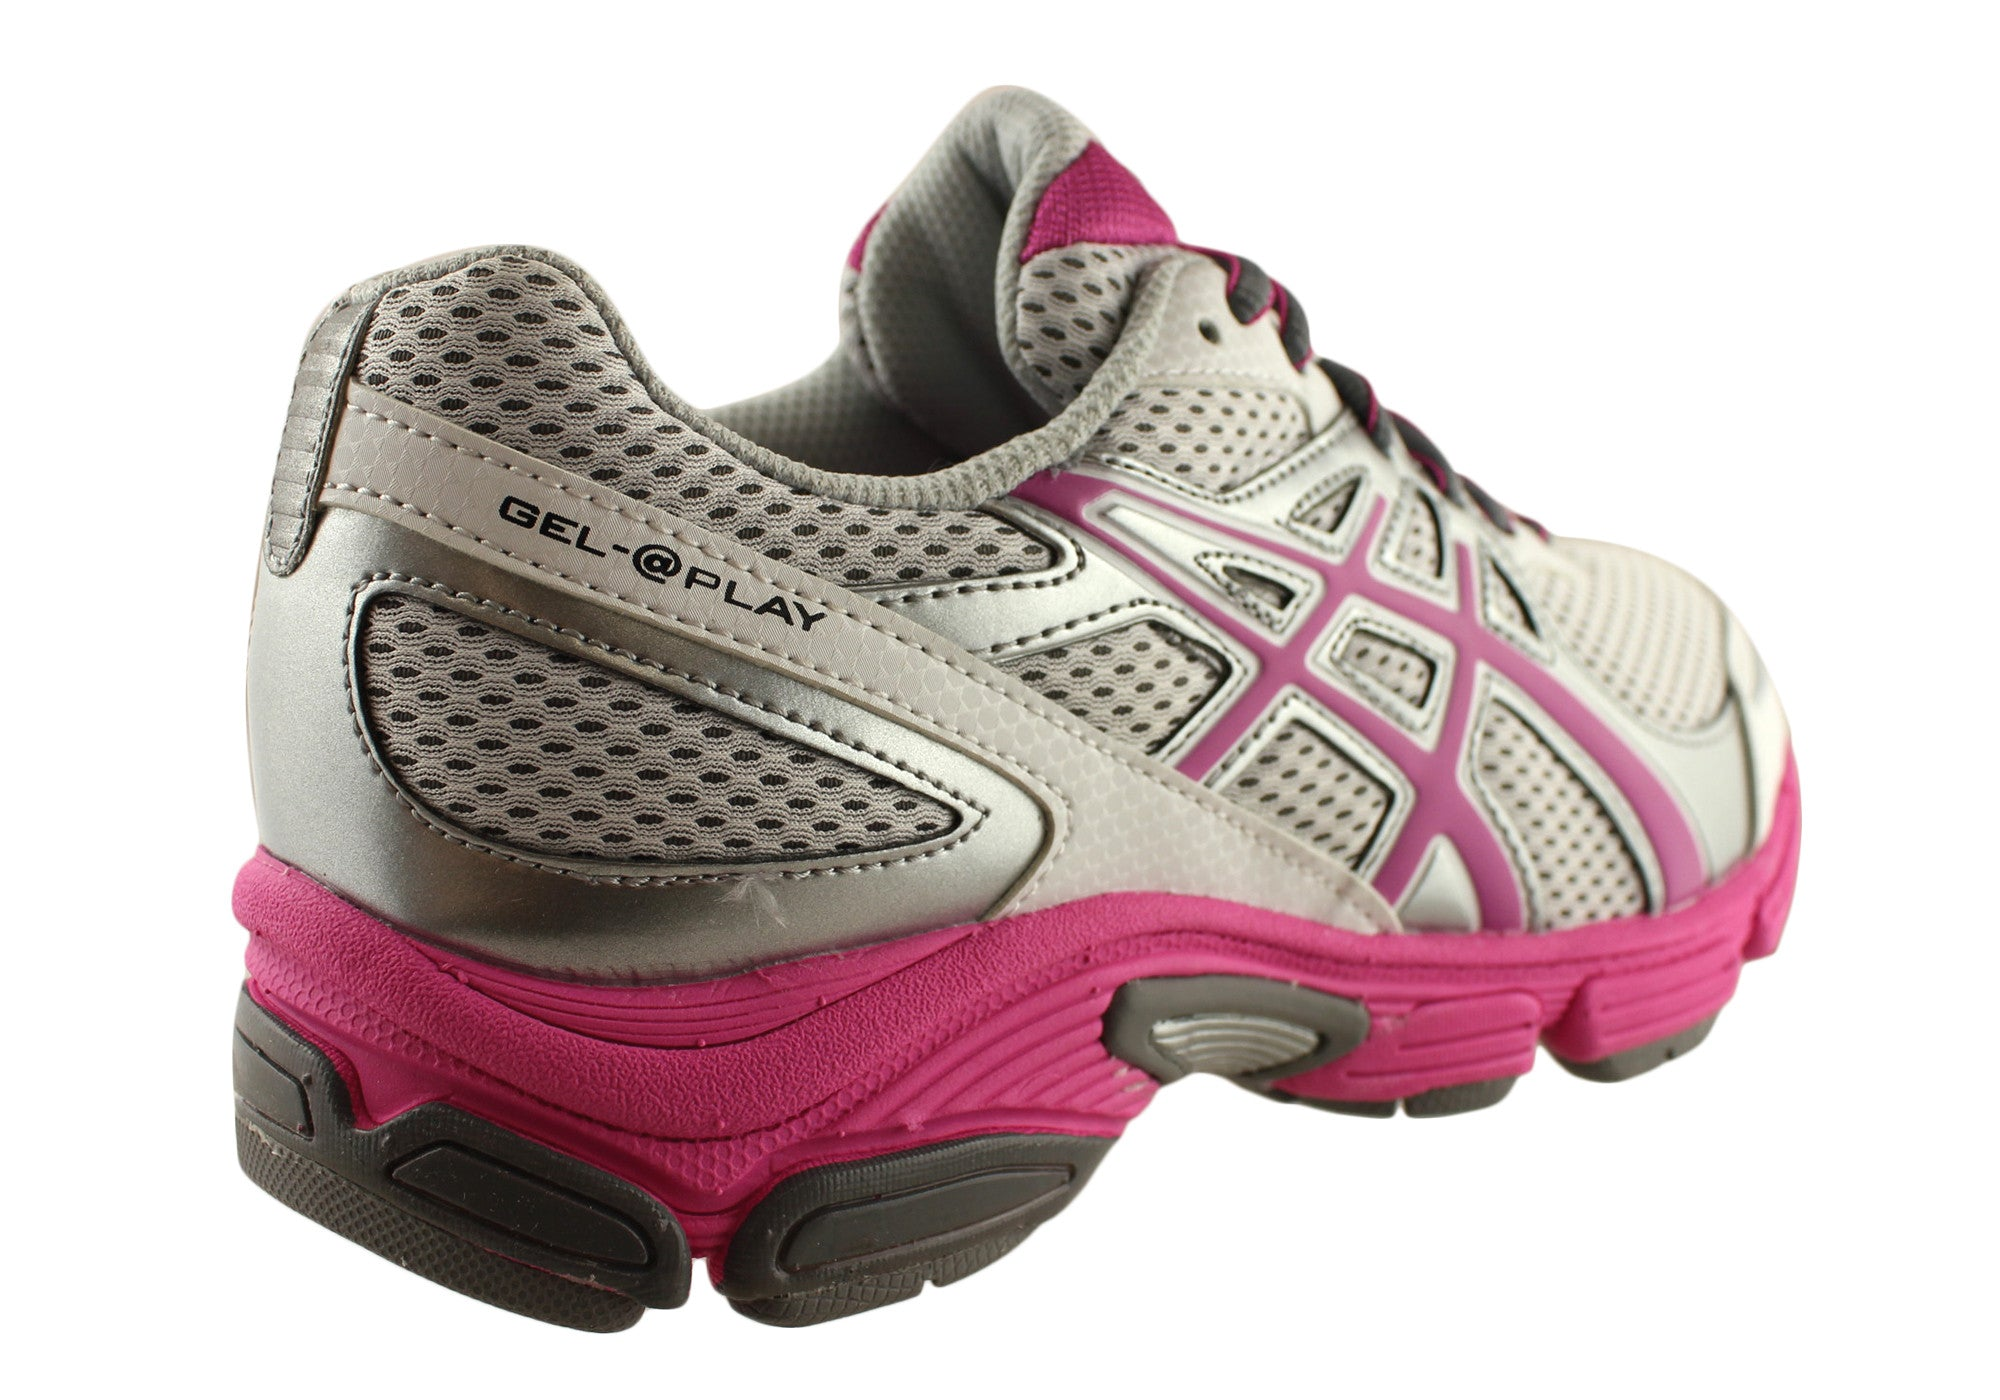 Asics Gel Play Kids Older Girls Sport Shoes Sneakers